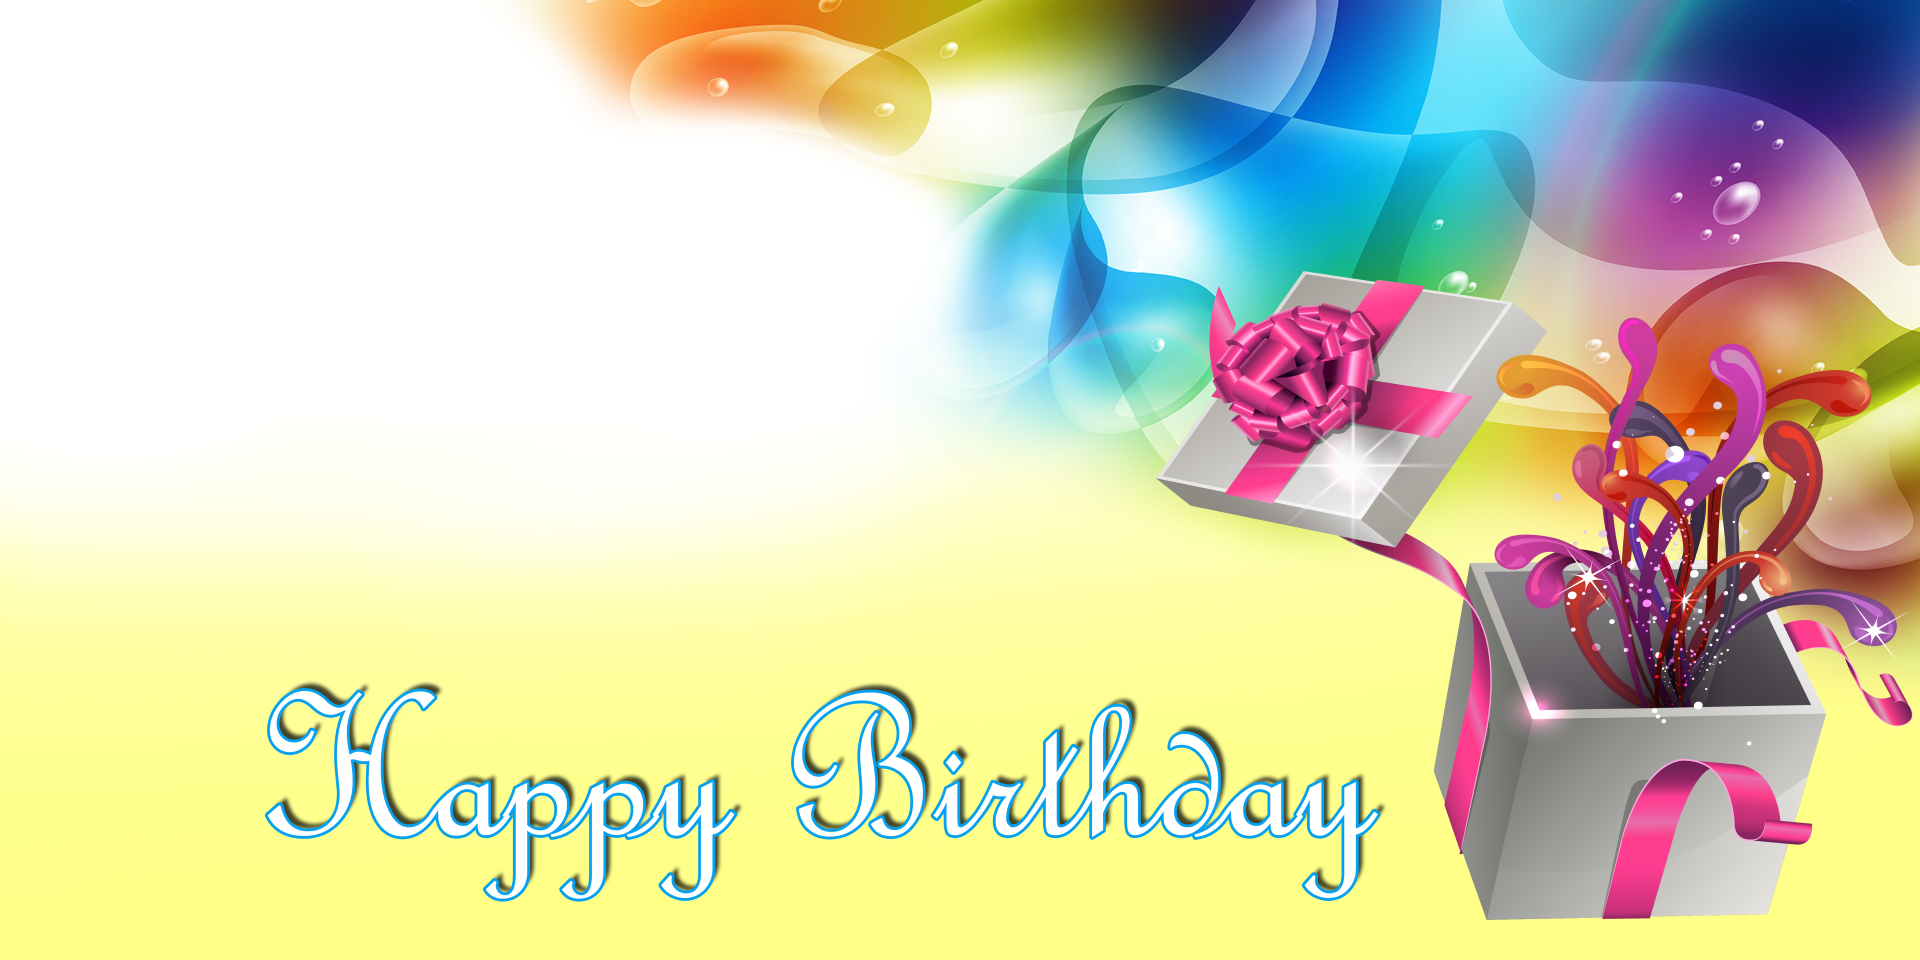 Happy Birthday Banner - Yellow Gift - Vinyl Banners | Gatorprints